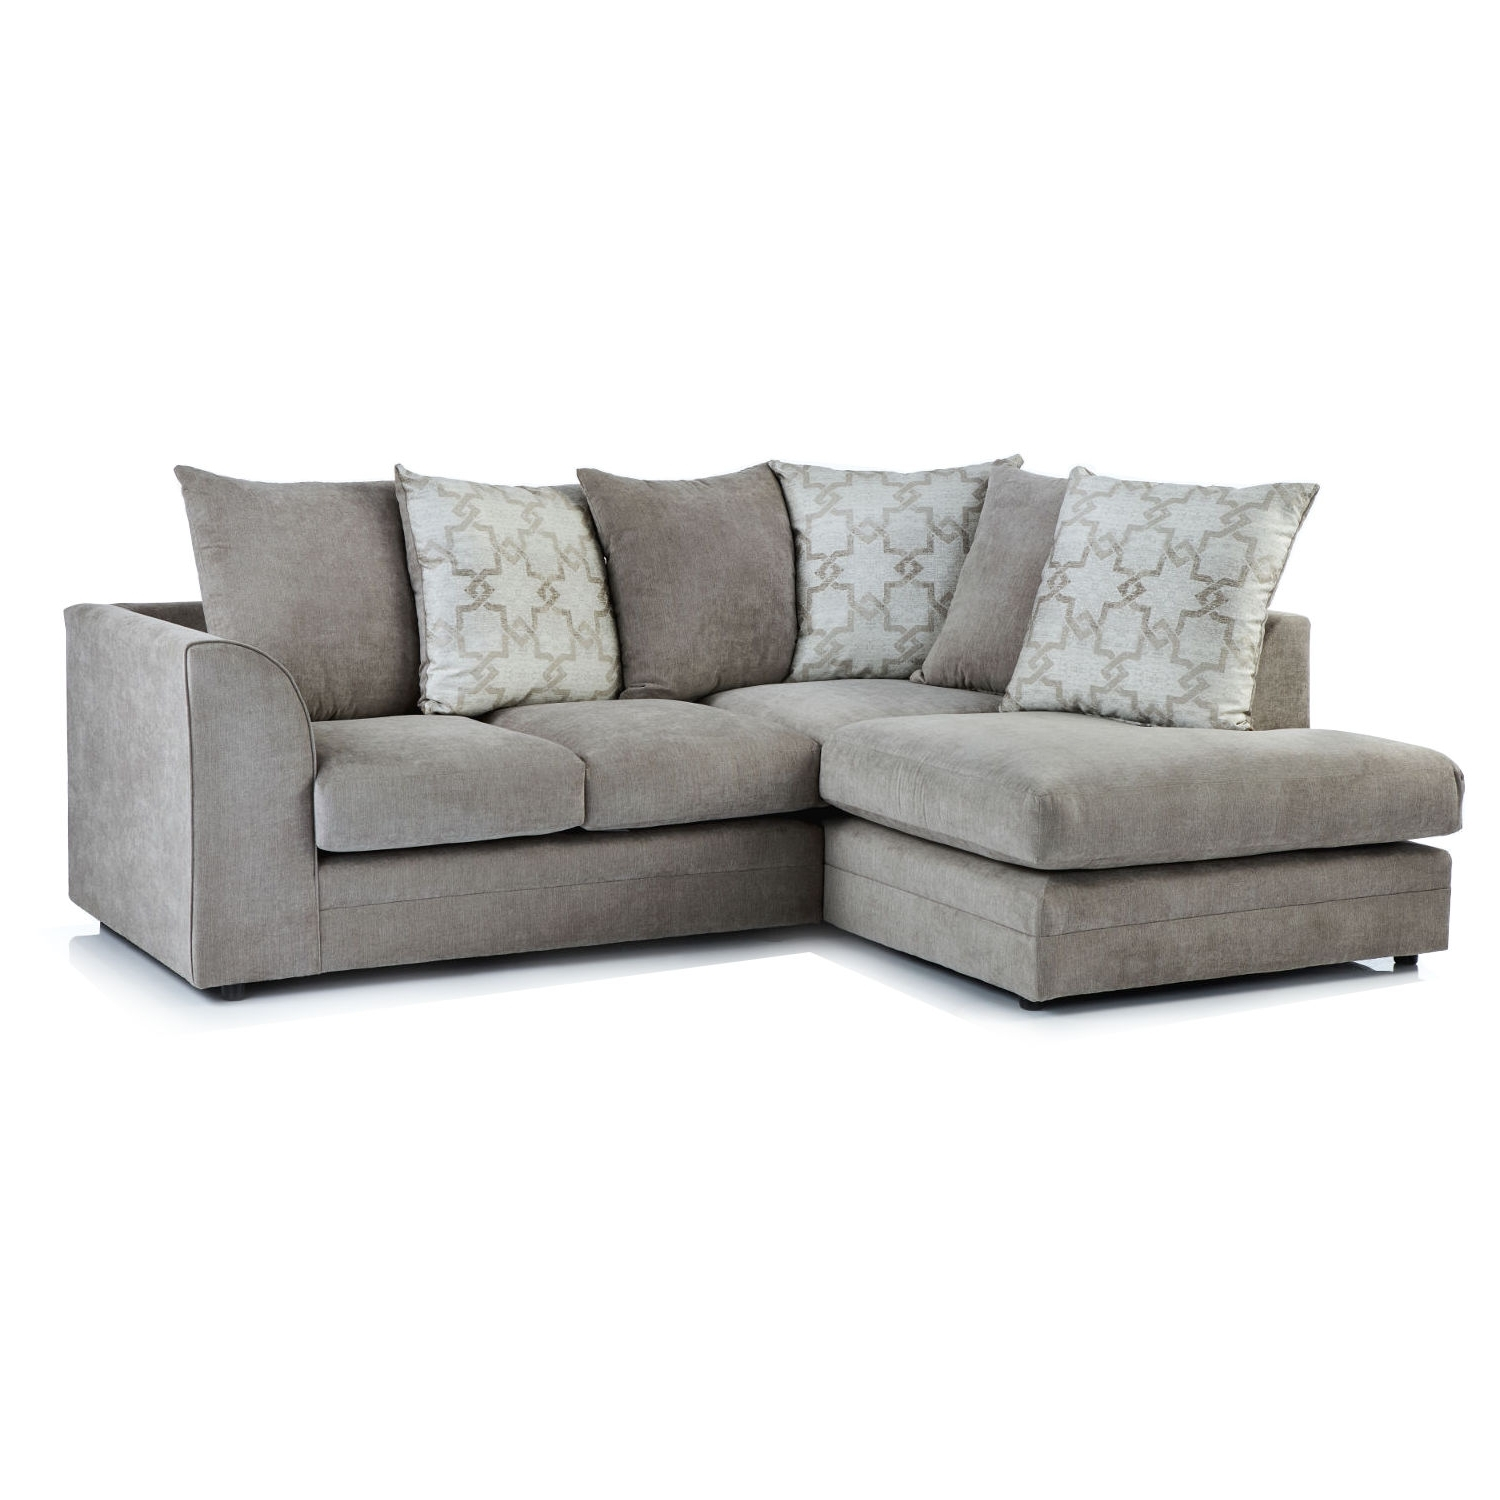 Well Liked Chaise Sofas With Washington Fabric Corner Chaise Sofa – Next Day Delivery (View 15 of 15)